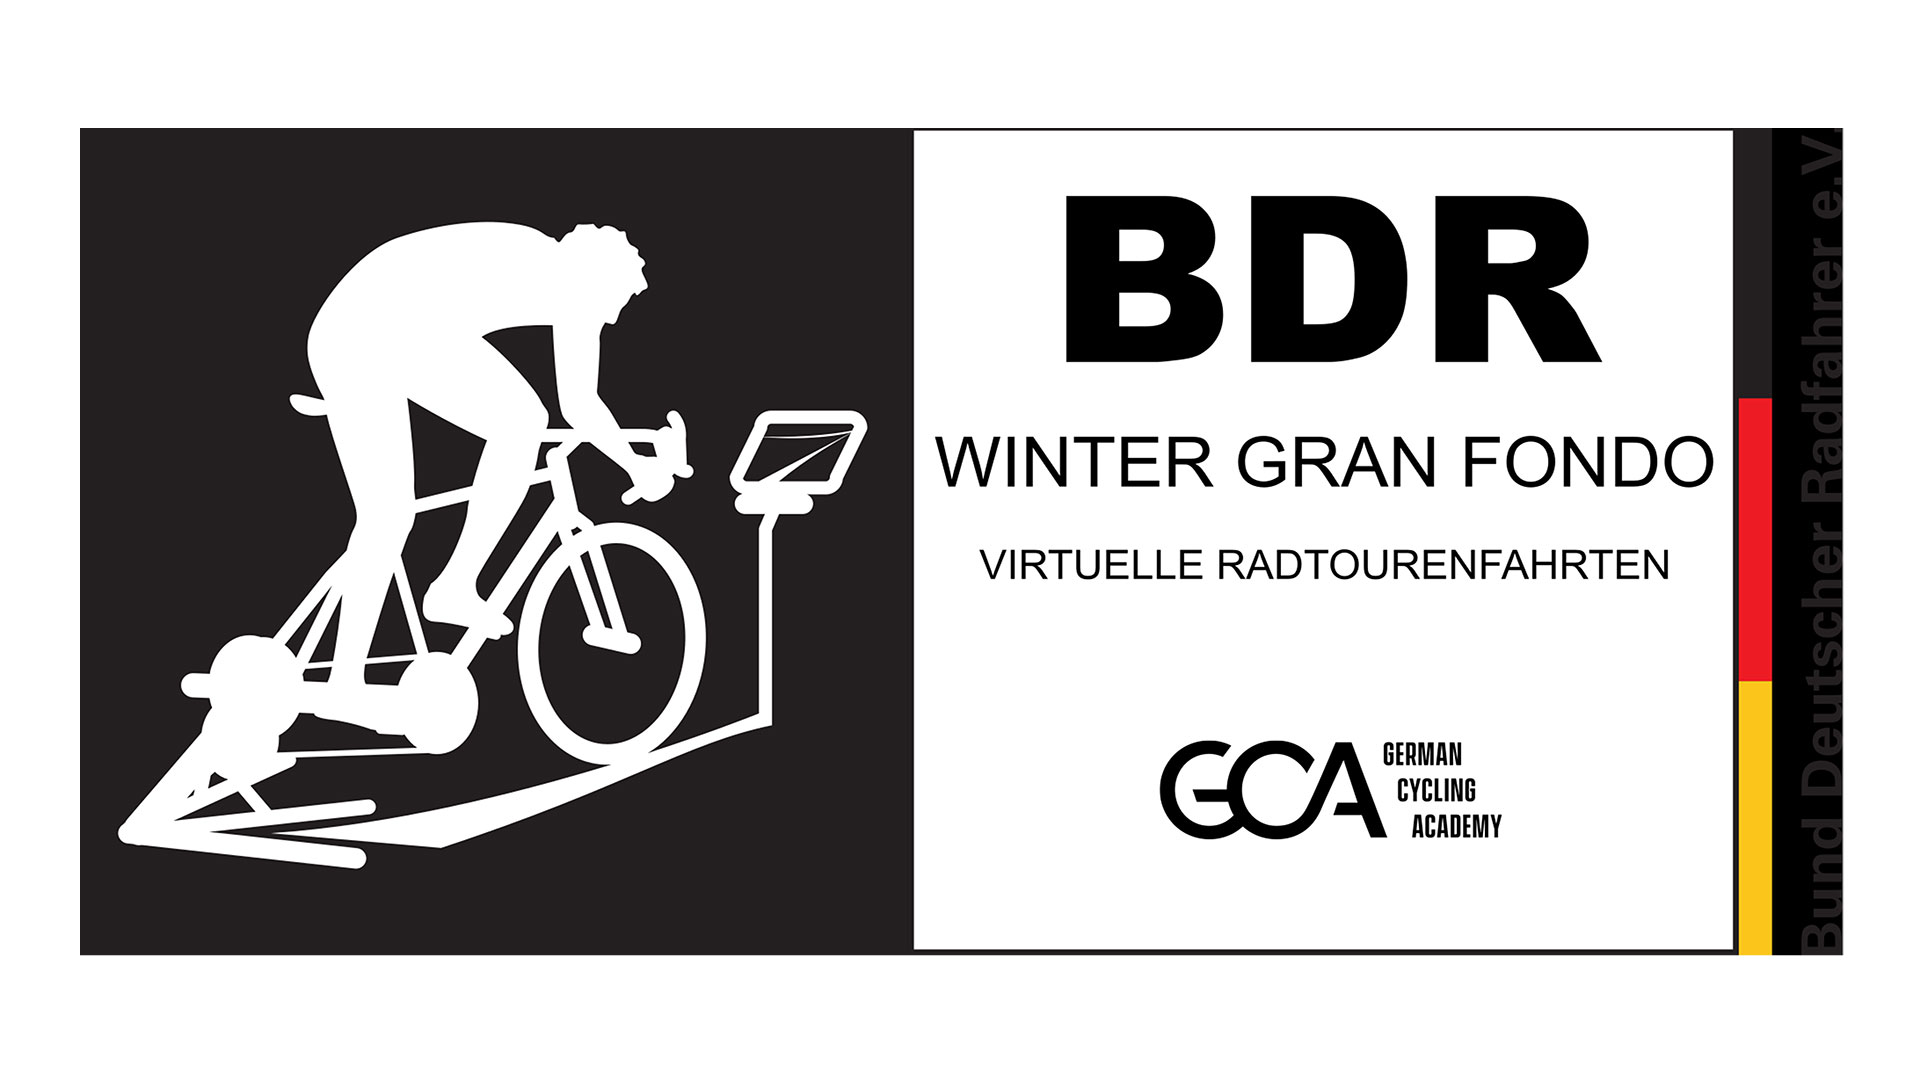 BDR Winter Grand Fondo